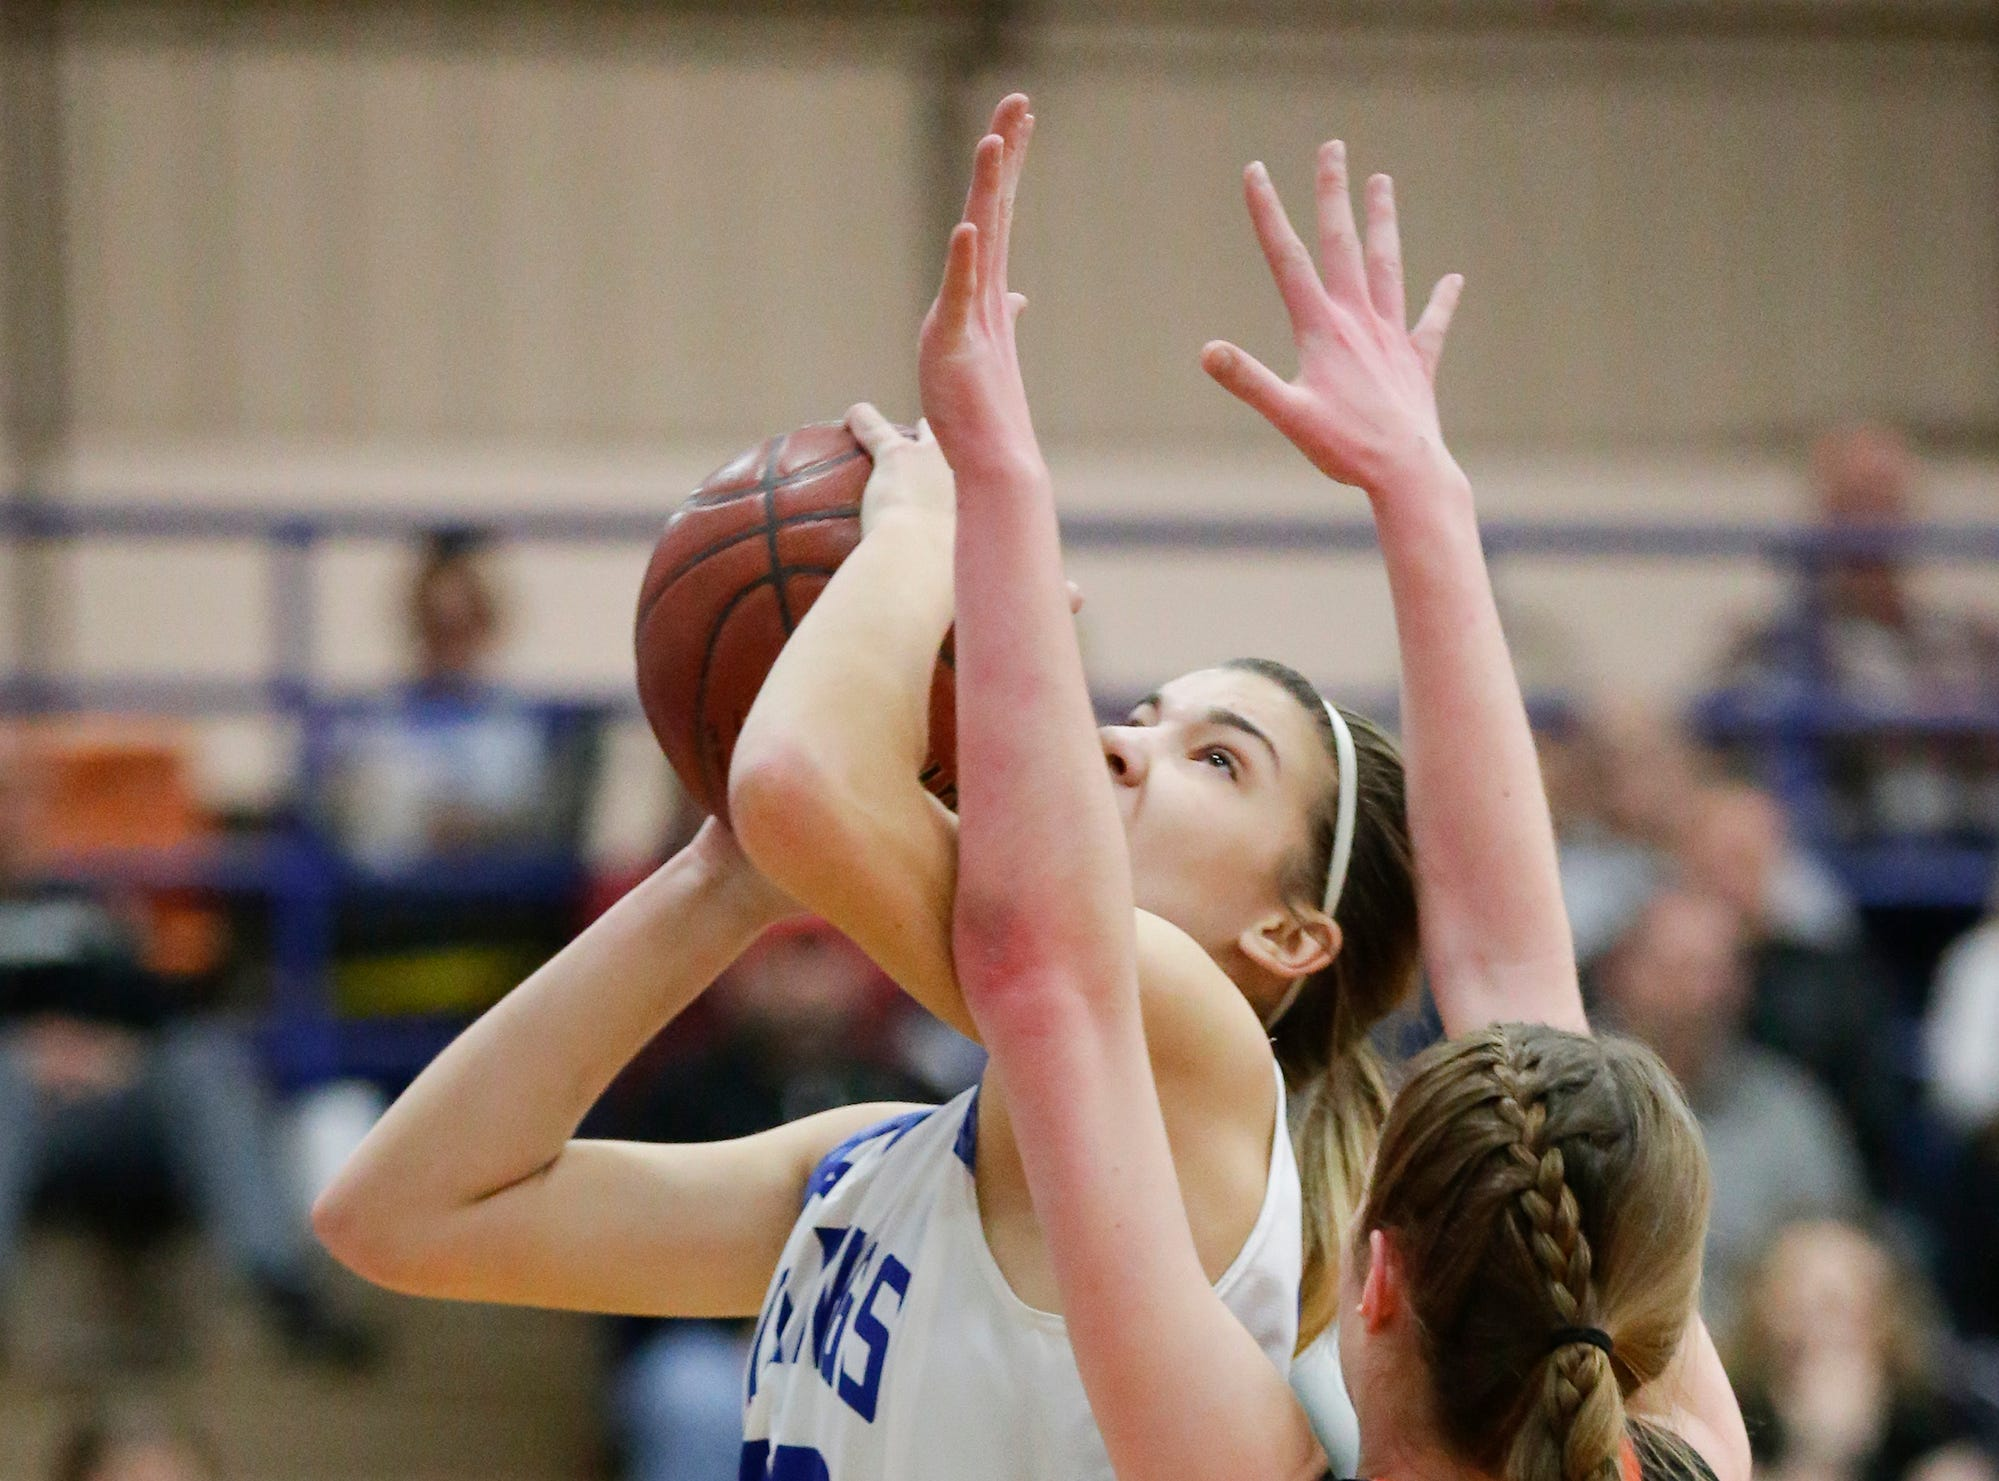 Winnebago Lutheran Academy girls basketball's Kaylee Frey goes up for a shot against North Fond du Lac High School's Rebecca Kingsland January 10, 2019 during their game in Fond du Lac. Doug Raflik/USA TODAY NETWORK-Wisconsin